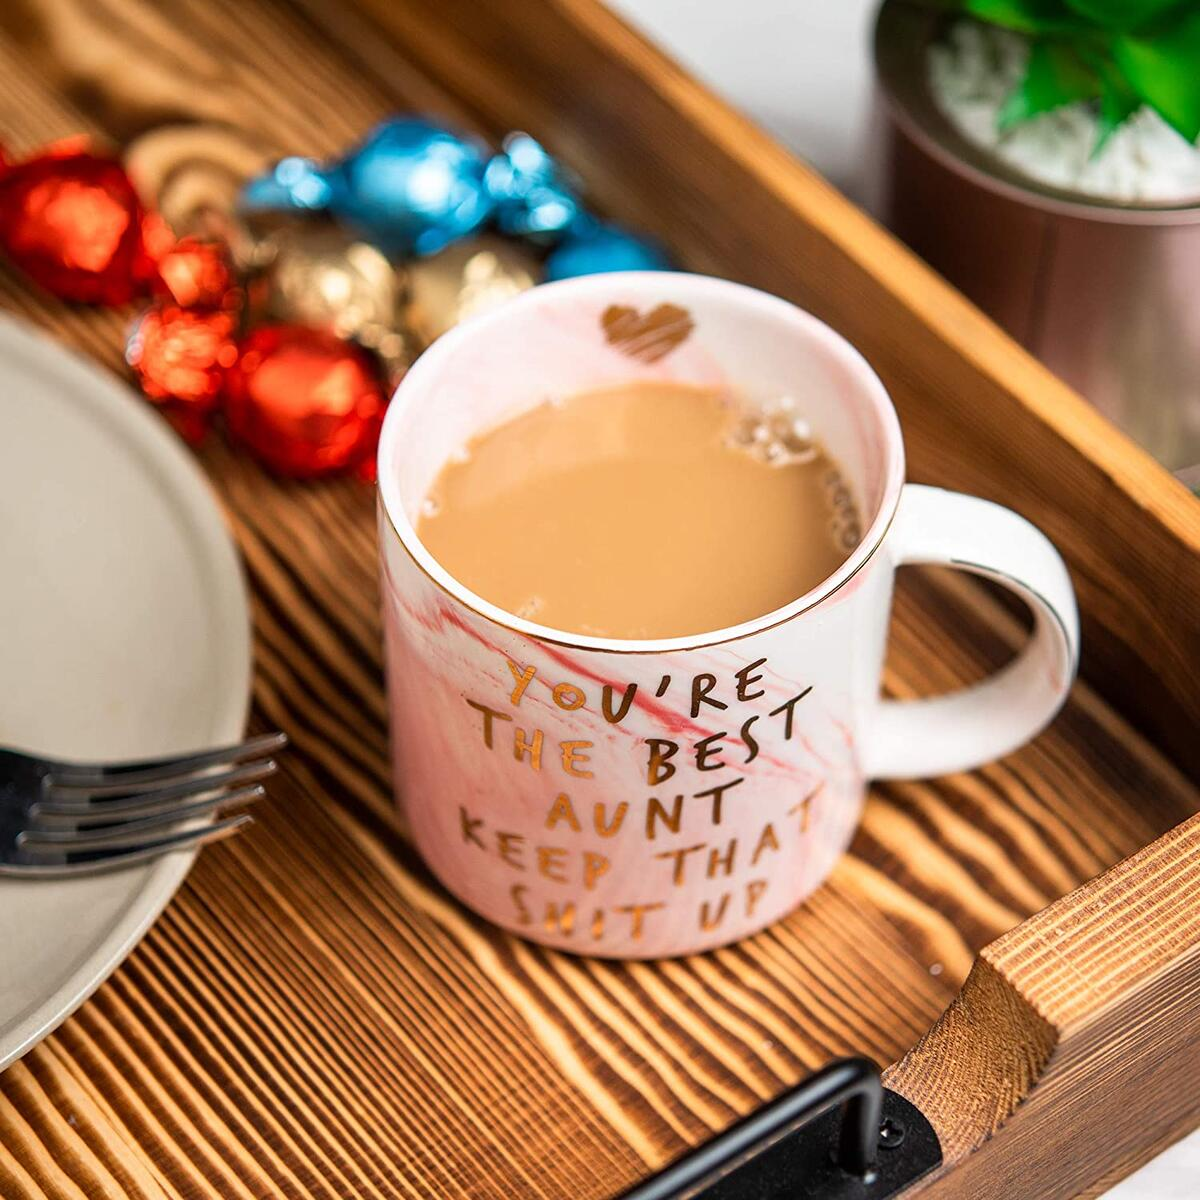 Aunt Gifts from Niece, Nephew - You're The Best Aunt Keep That S Up - Funny Gift for Aunts - BAE Best Aunt Ever Gifts for Birthday - Great Auntie Gifts - Favorite Aunt Mug, Ceramic Coffee Cup